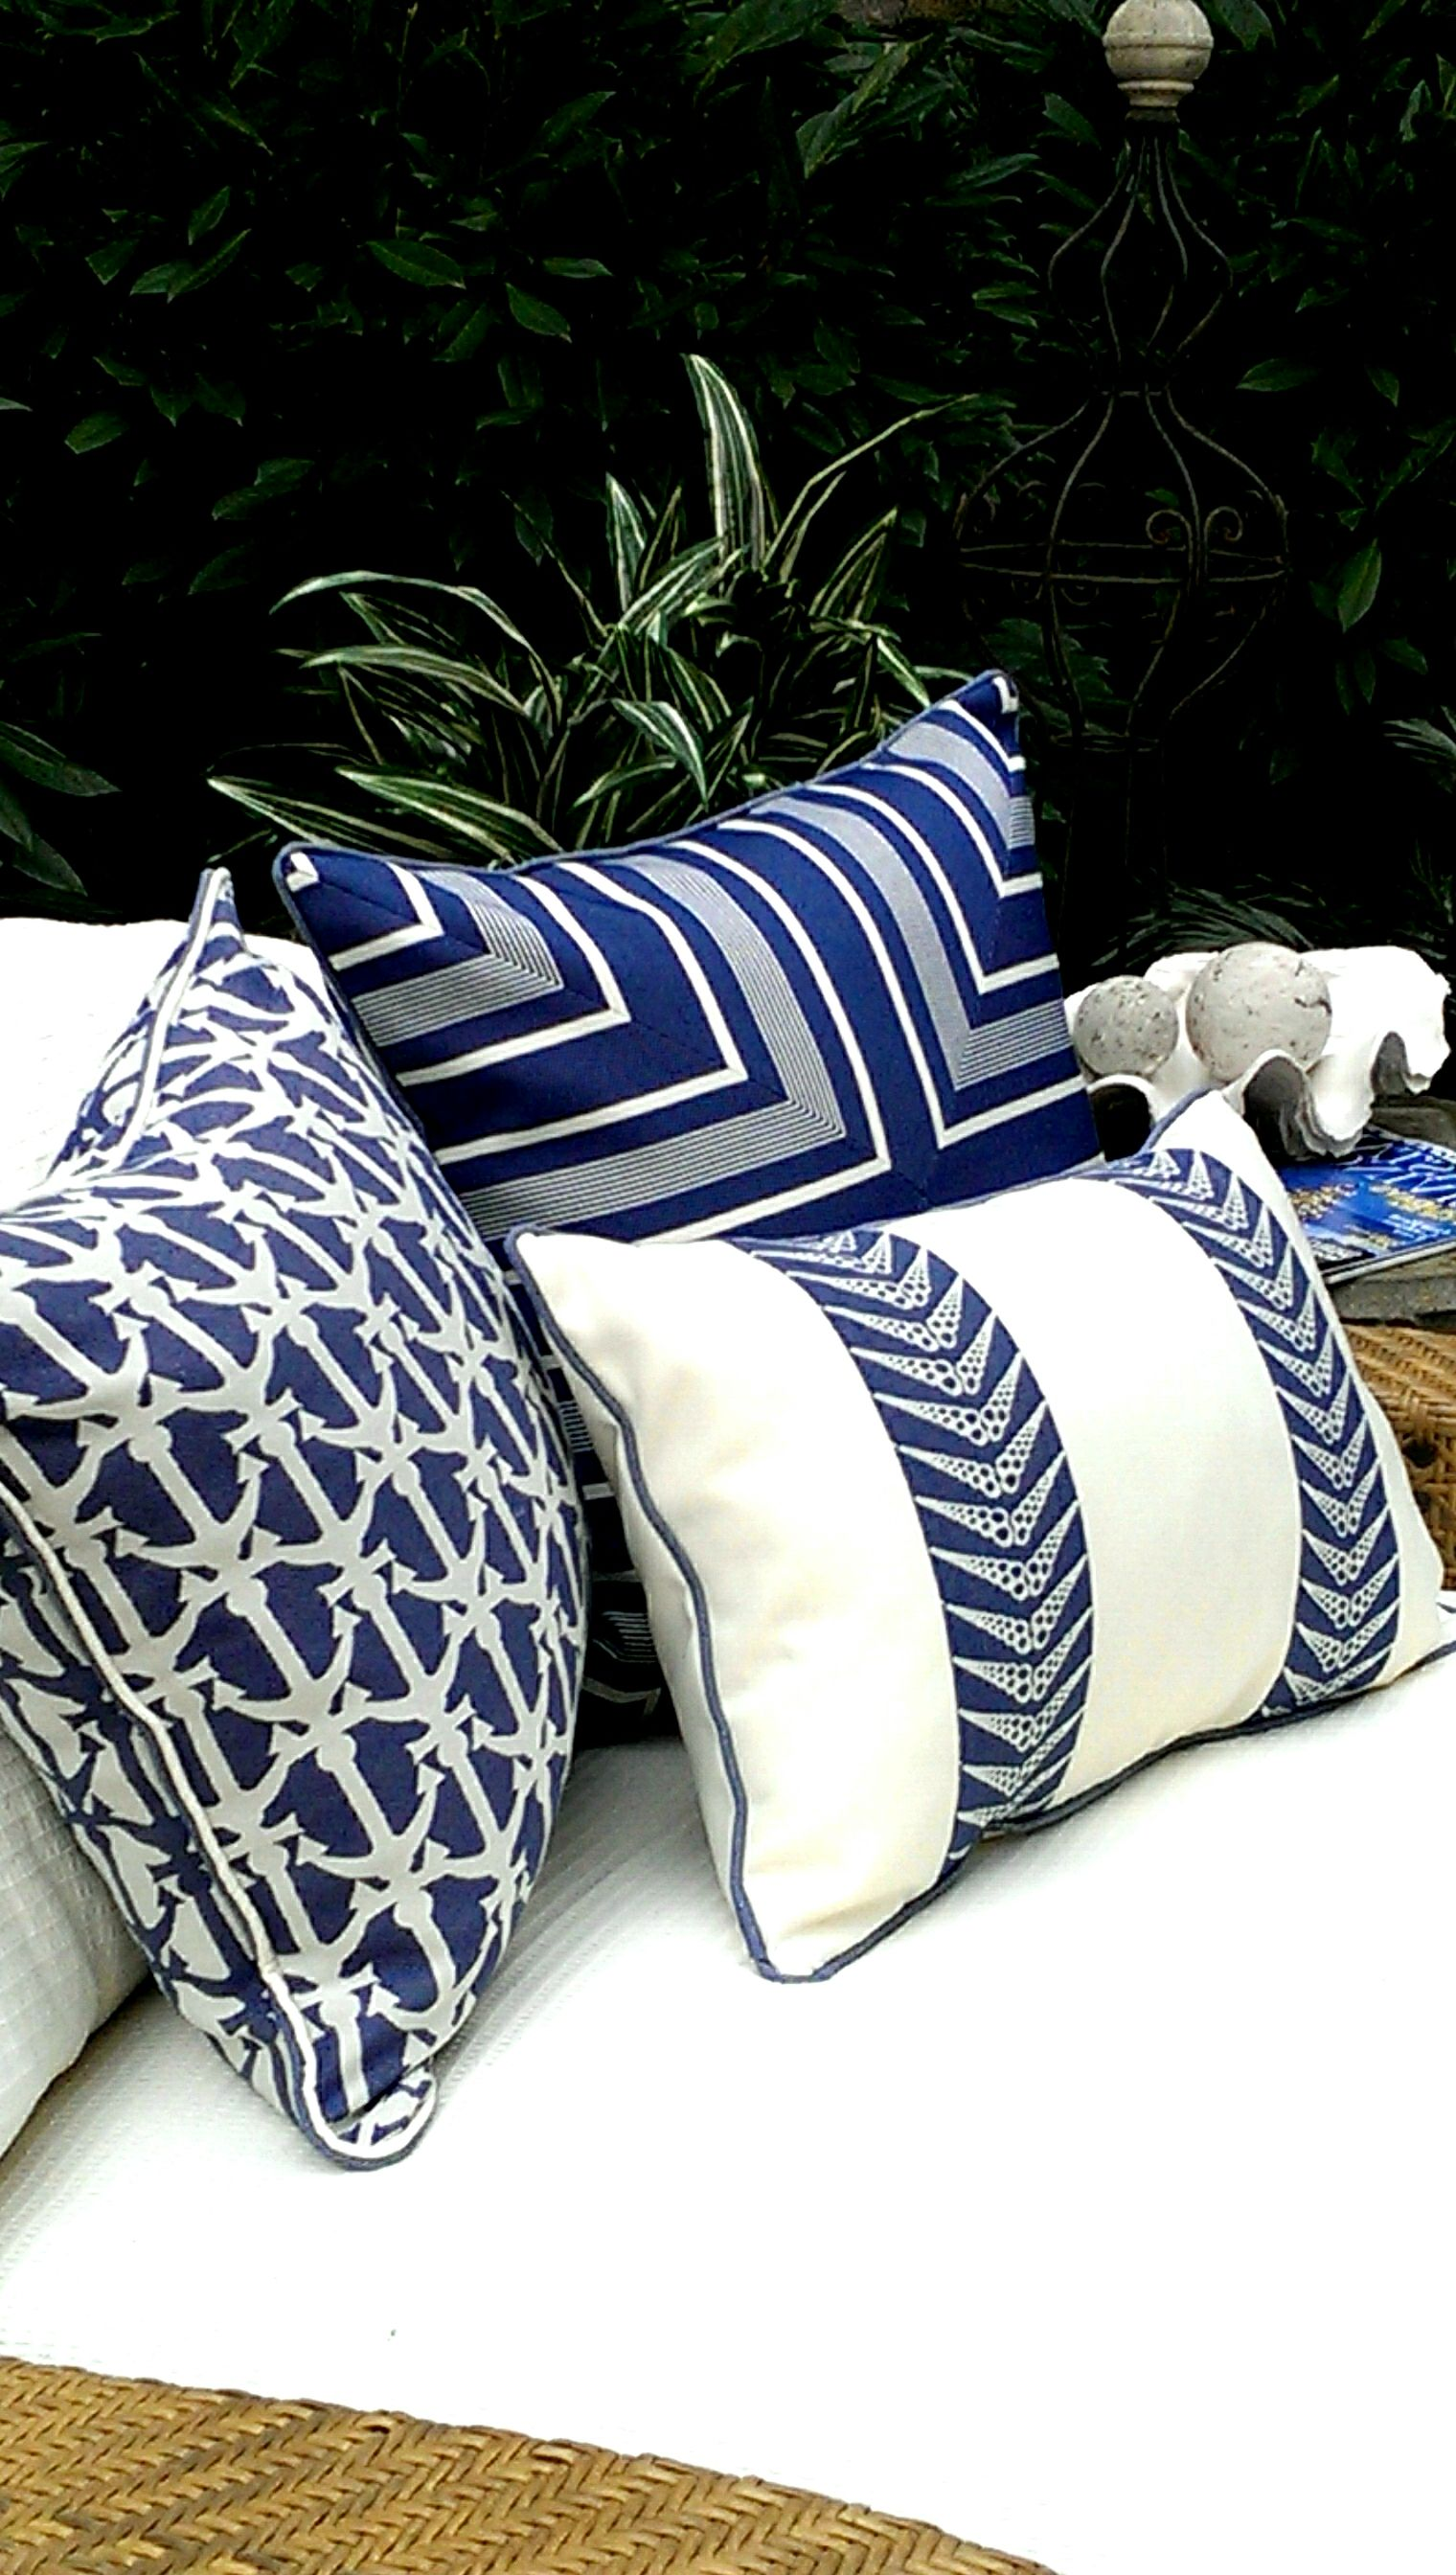 wicker outdoor pillow cabana with and pillows space blue teak seating cushions white style coastal pin throw